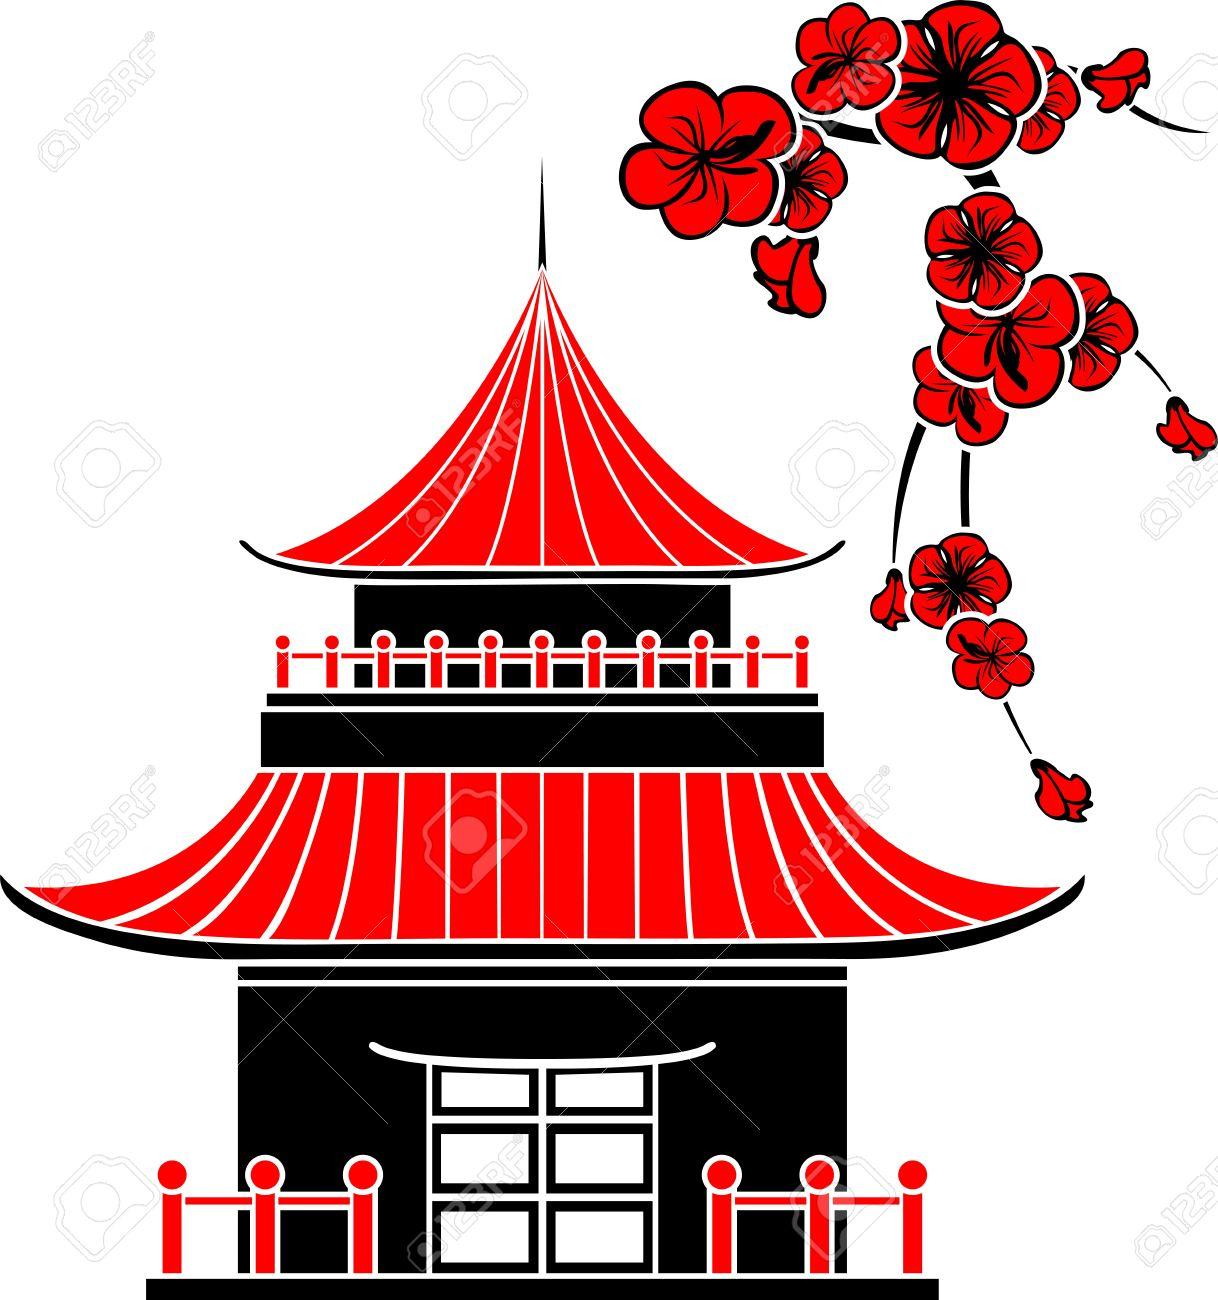 1177 Japan free clipart.